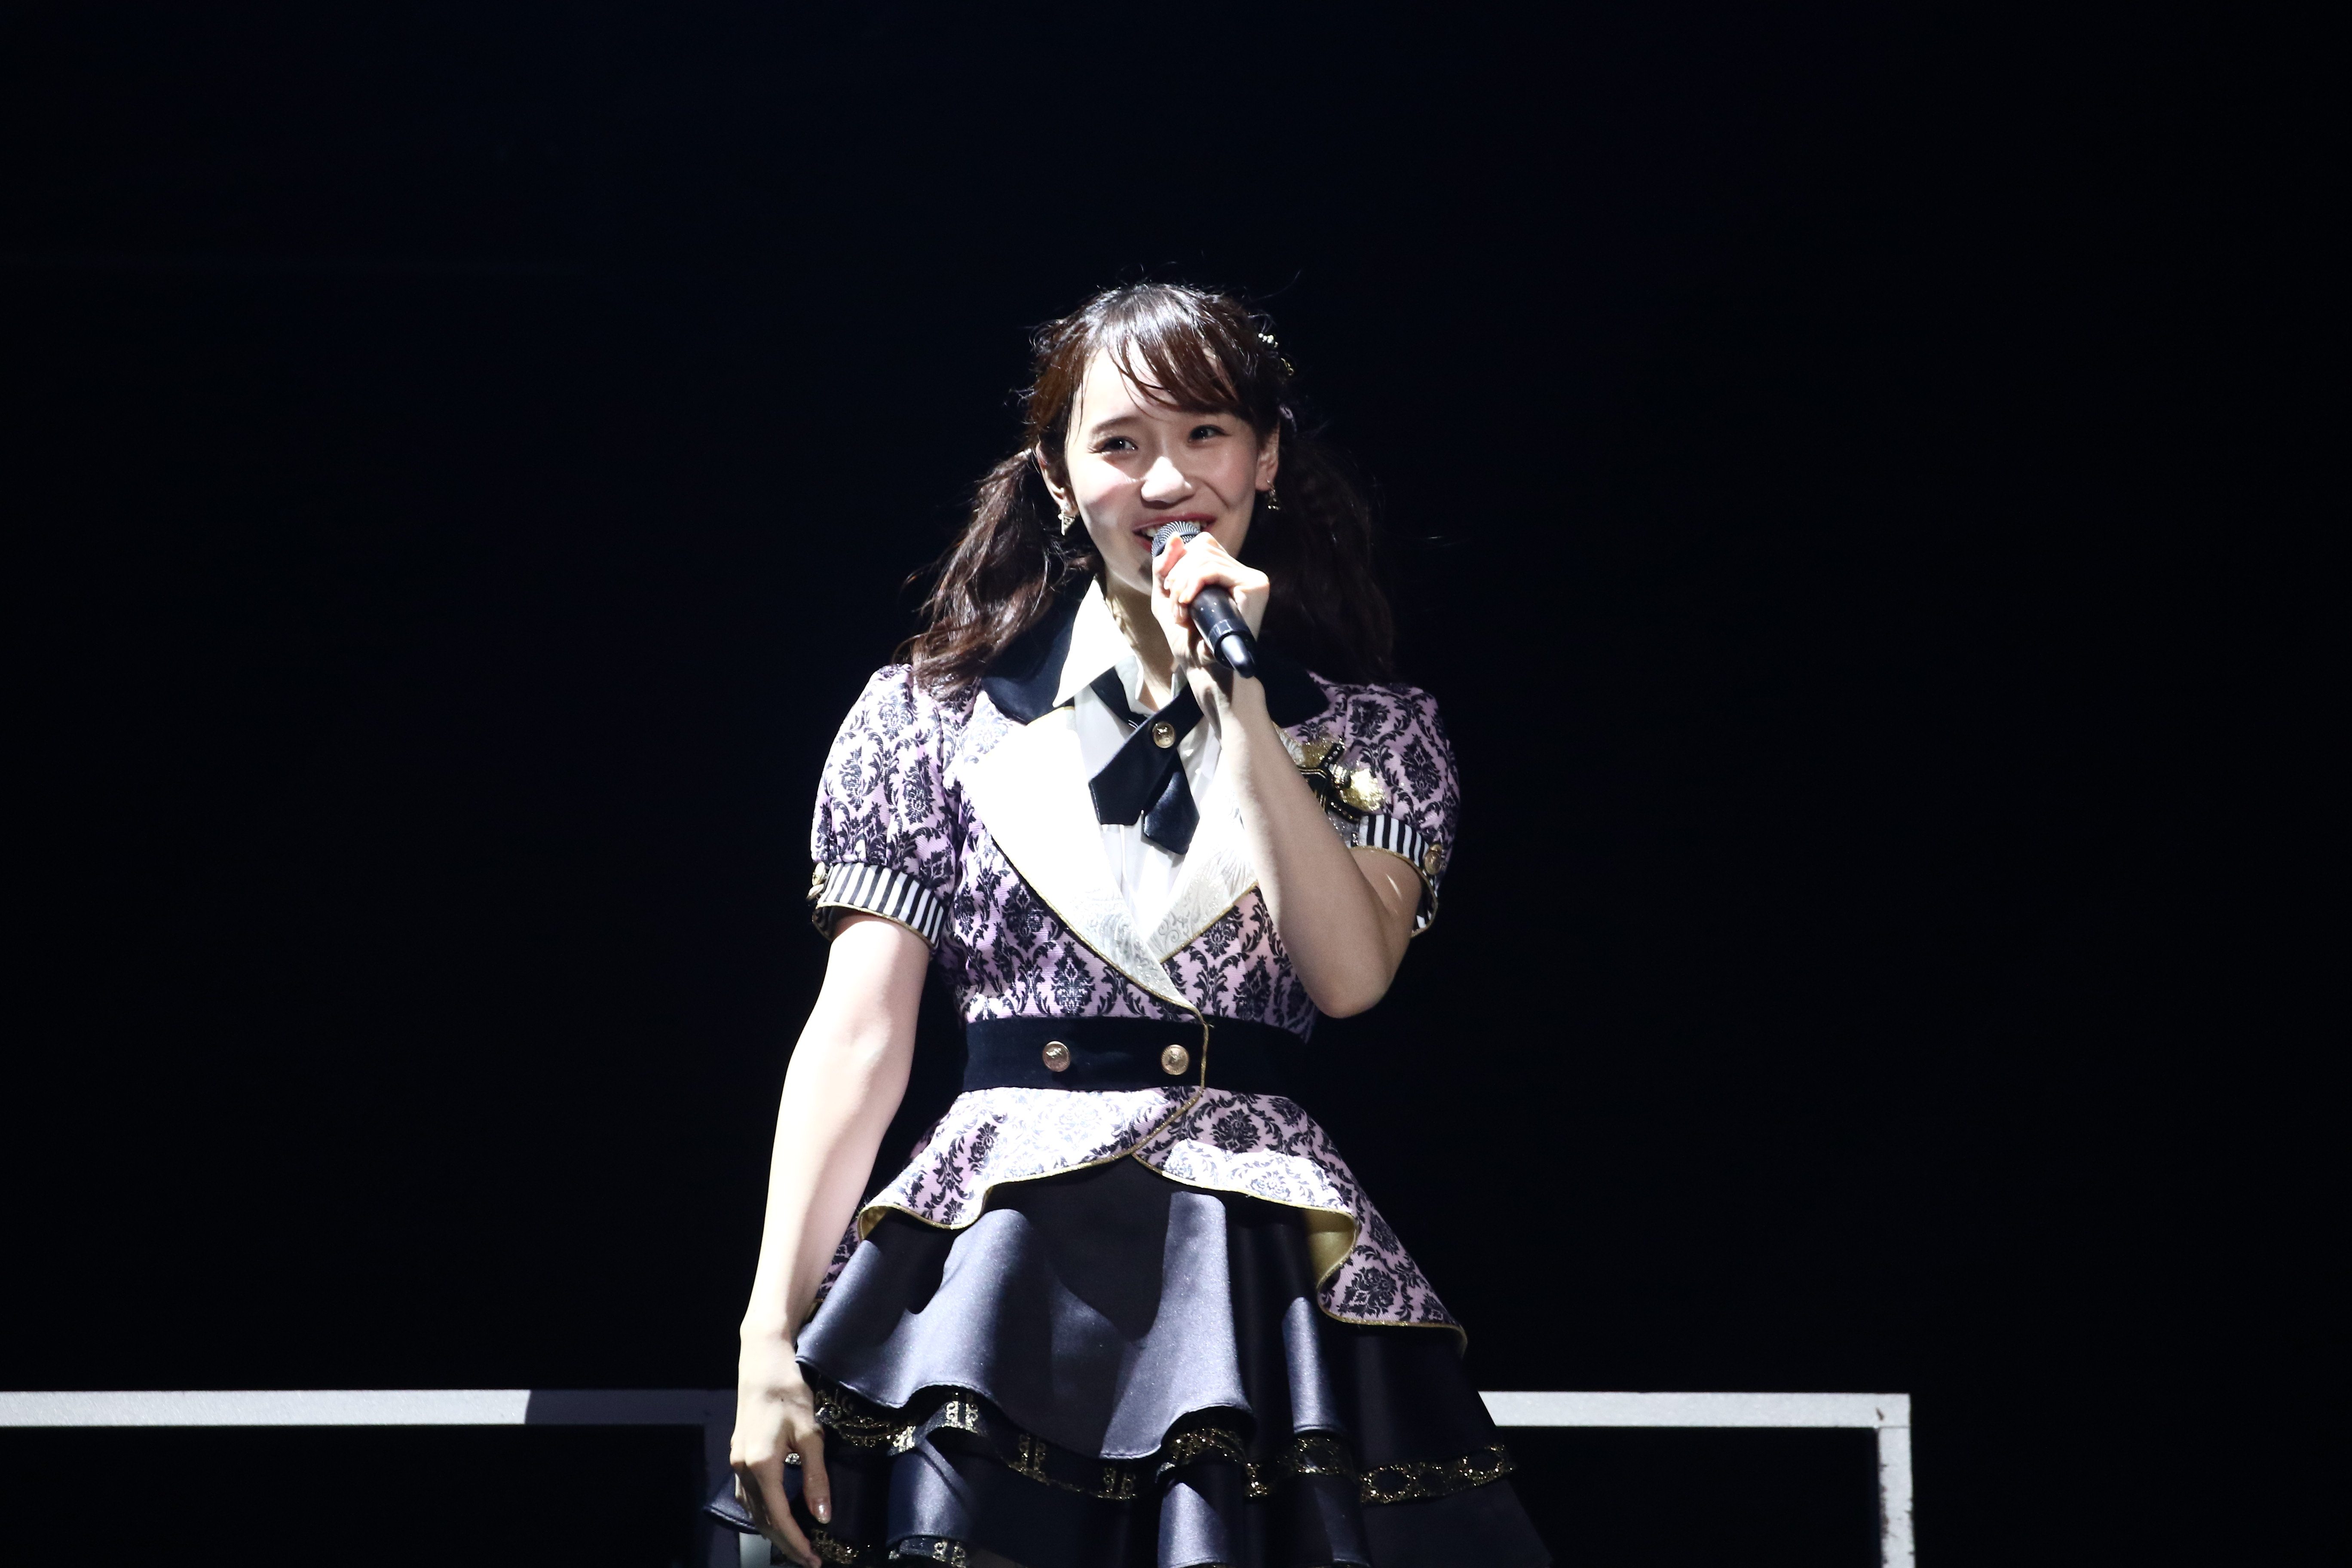 NMB48 LIVE TOUR 2018 名古屋 チームM公演-210